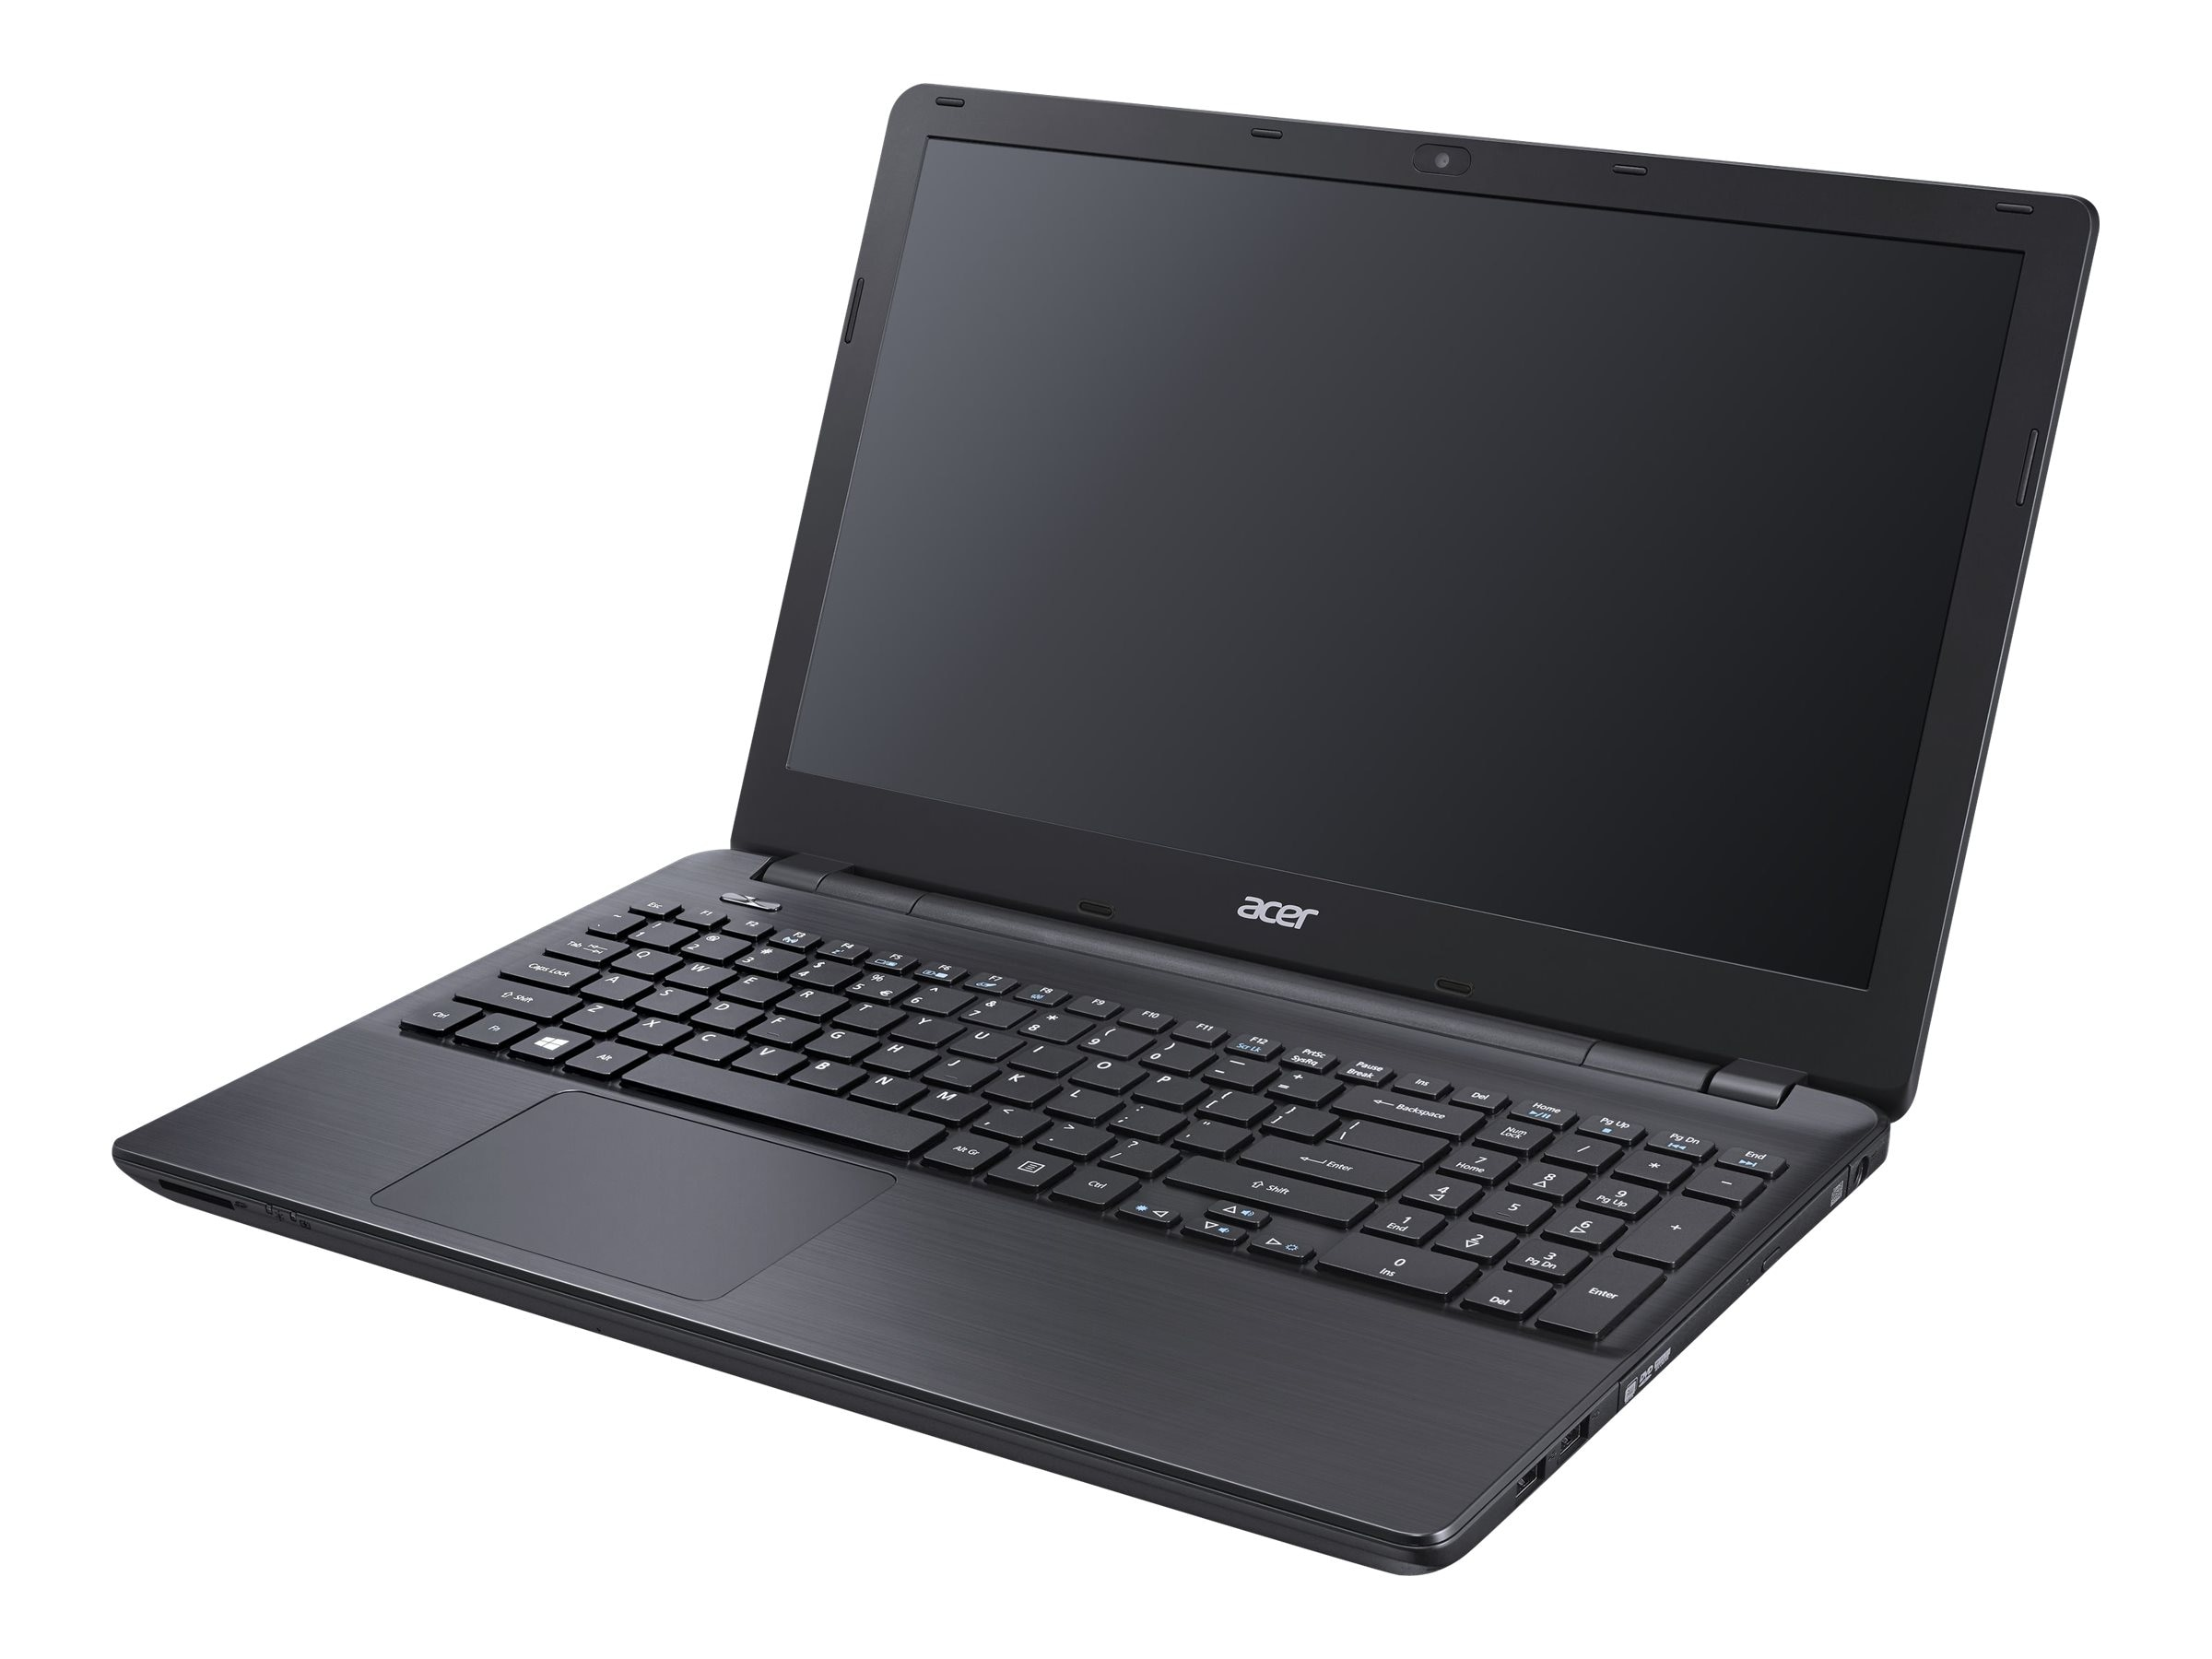 Acer Aspire E5-521-435W AMD A4-6210 1.8GHz 4GB 500GB DVD SM bgn GNIC BT WC 15.6 HD W8.1-64, NX.MLFAA.010, 17650499, Notebooks